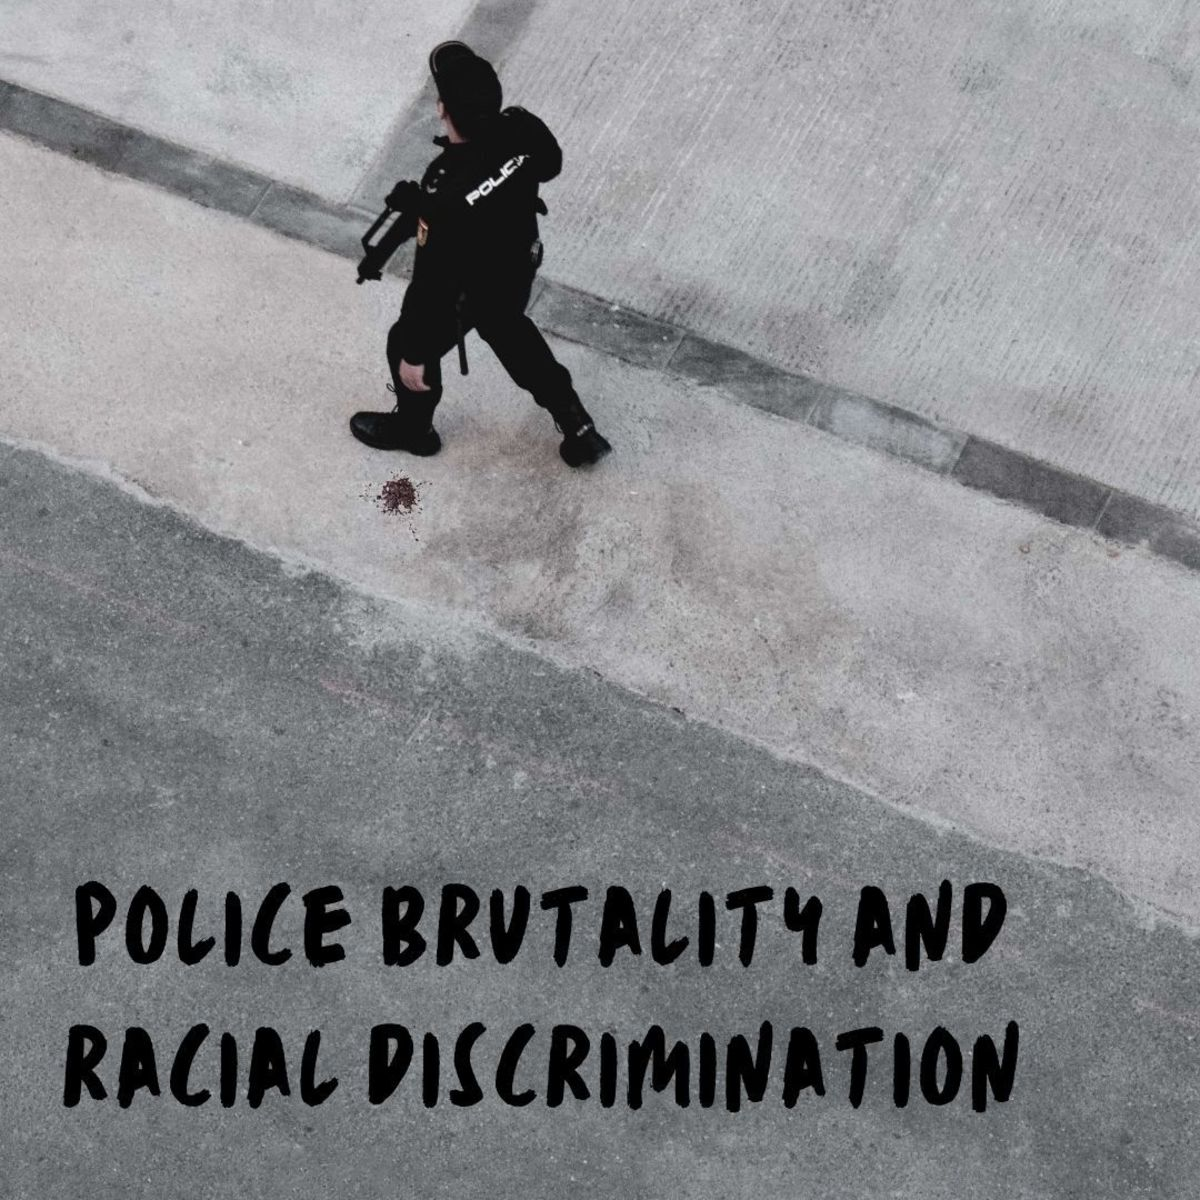 Racial discrimination is an underlying factor in police brutality